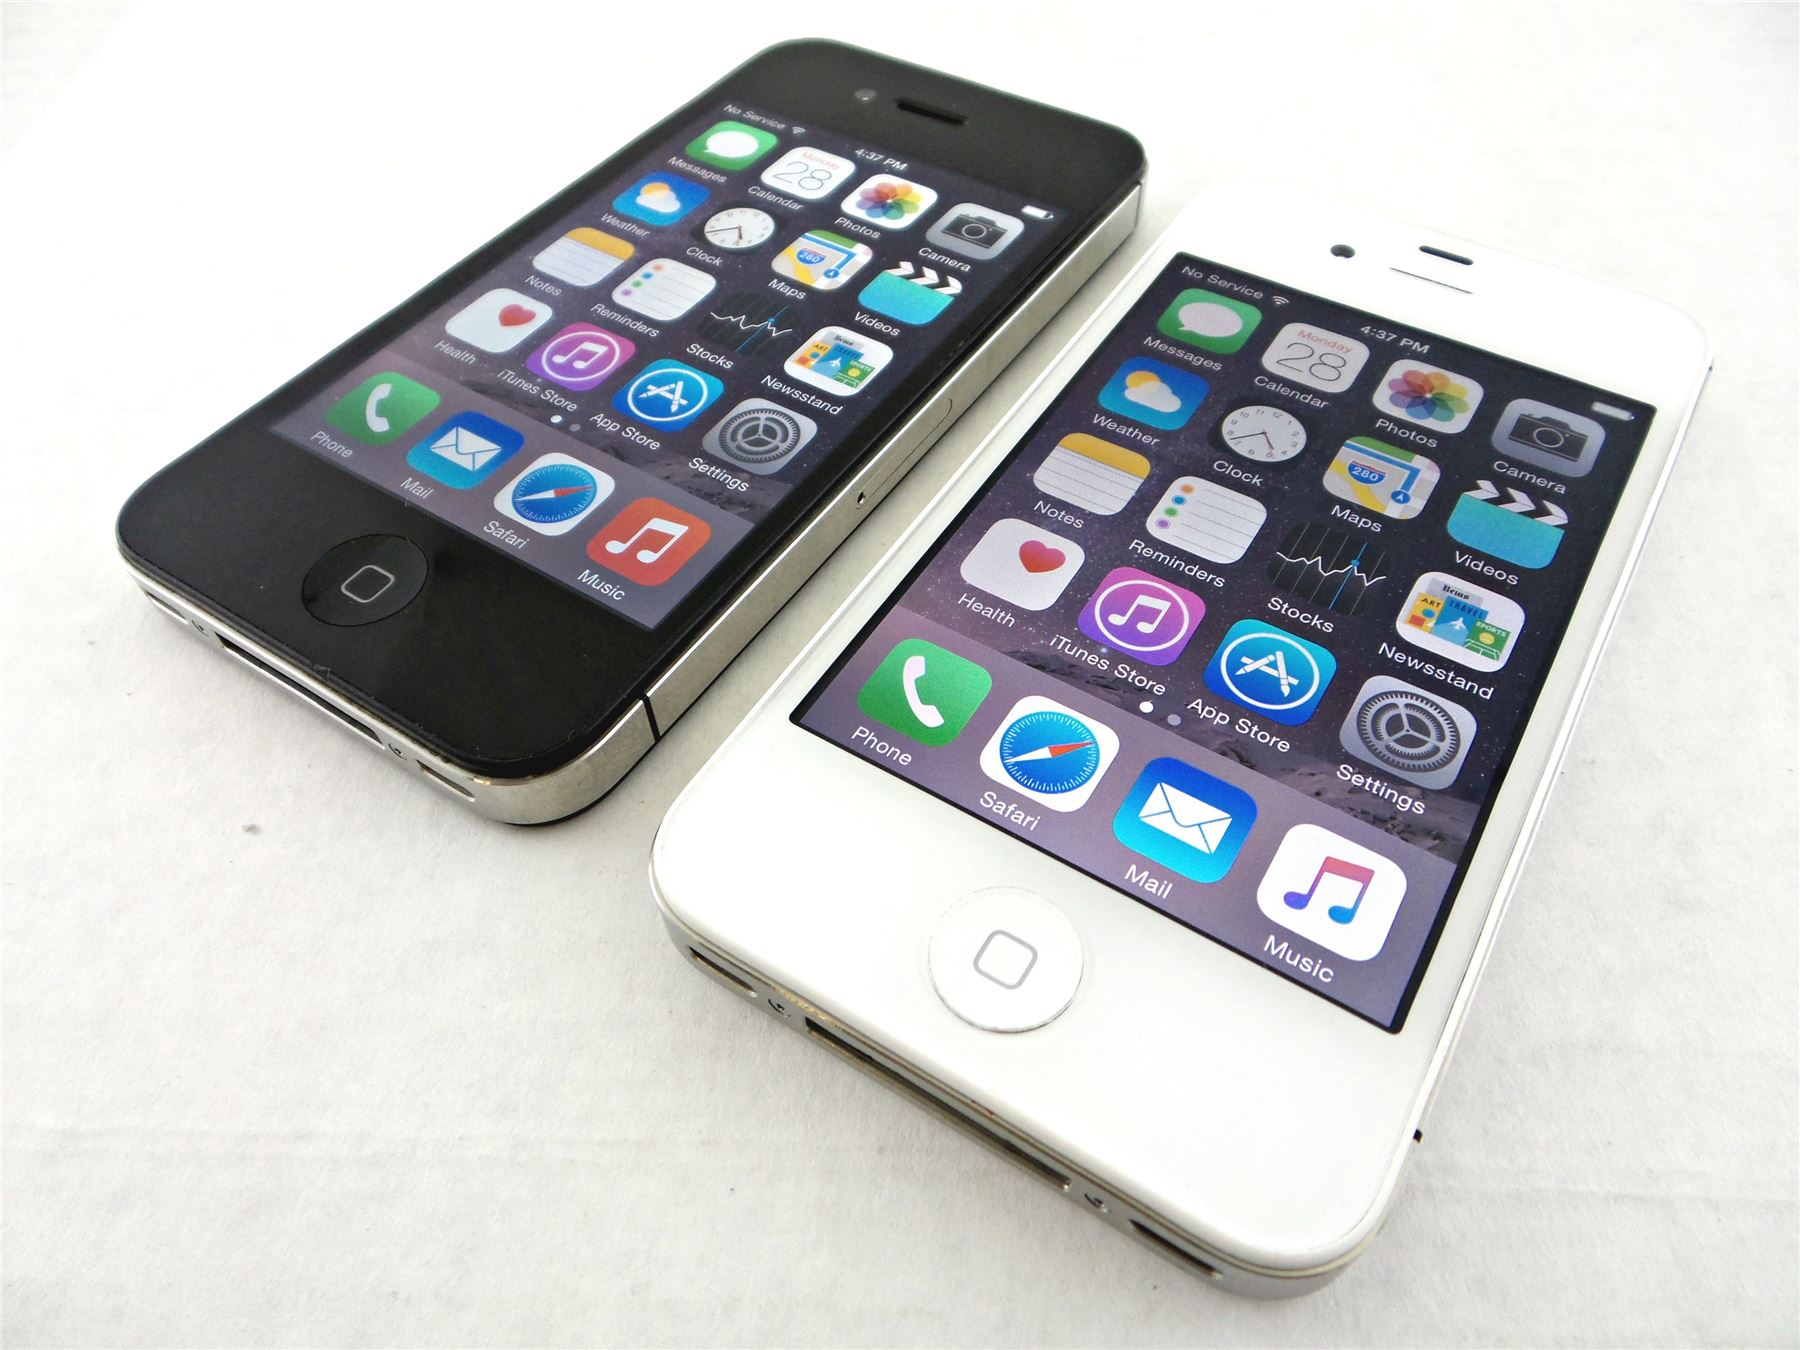 iphone 4s at t apple iphone 4s smartphone 8 16gb 32gb 64gb at amp t t mobile 3026